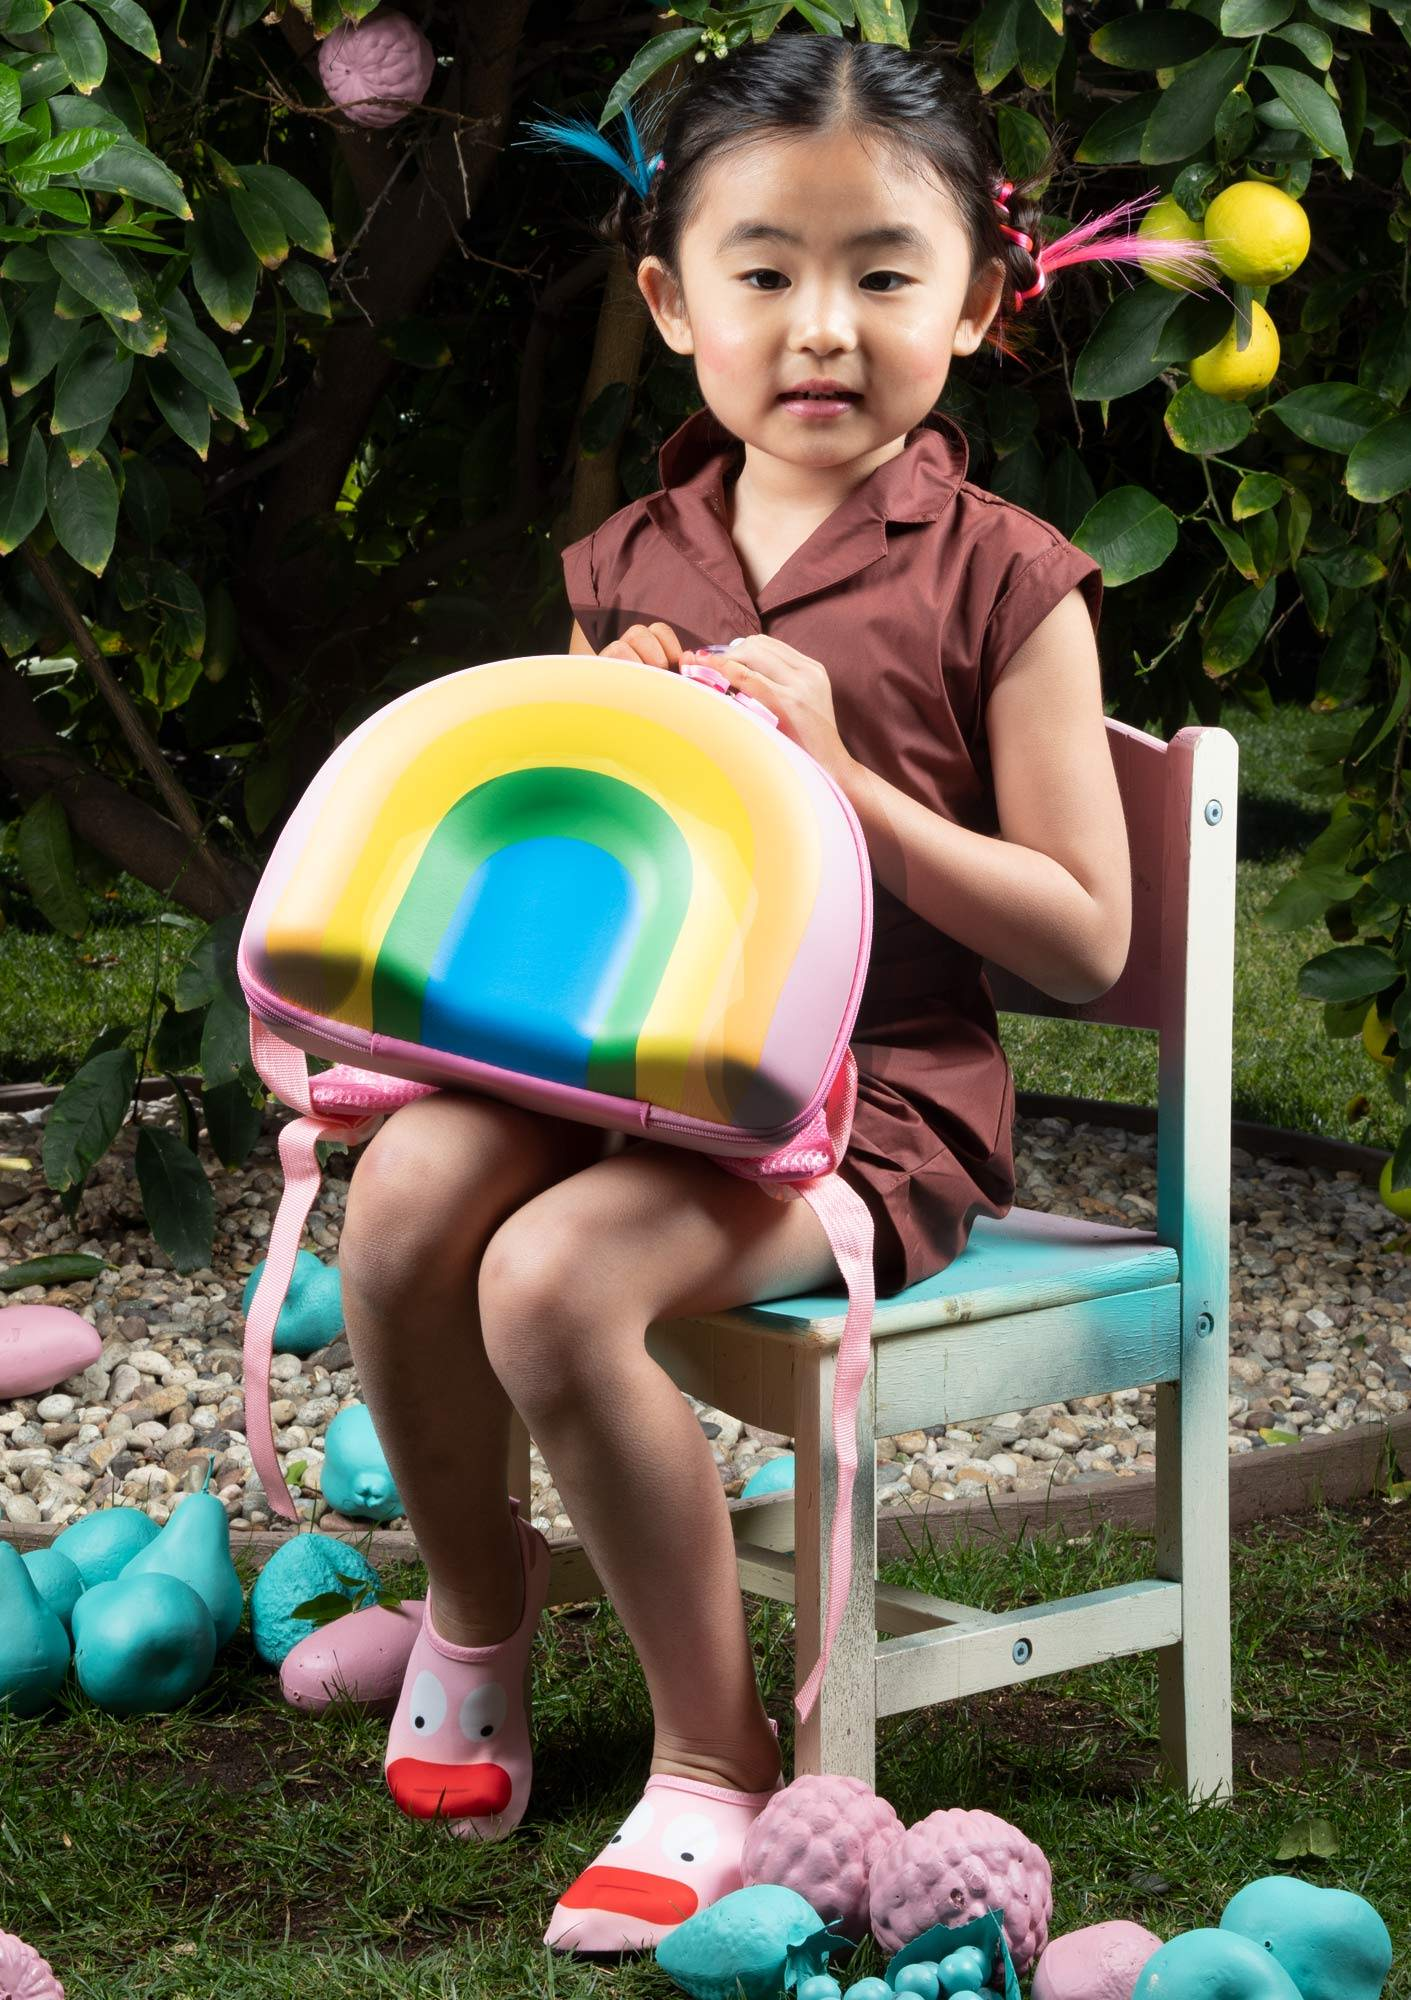 Young girl sitting on a chair with a rainbow backpack